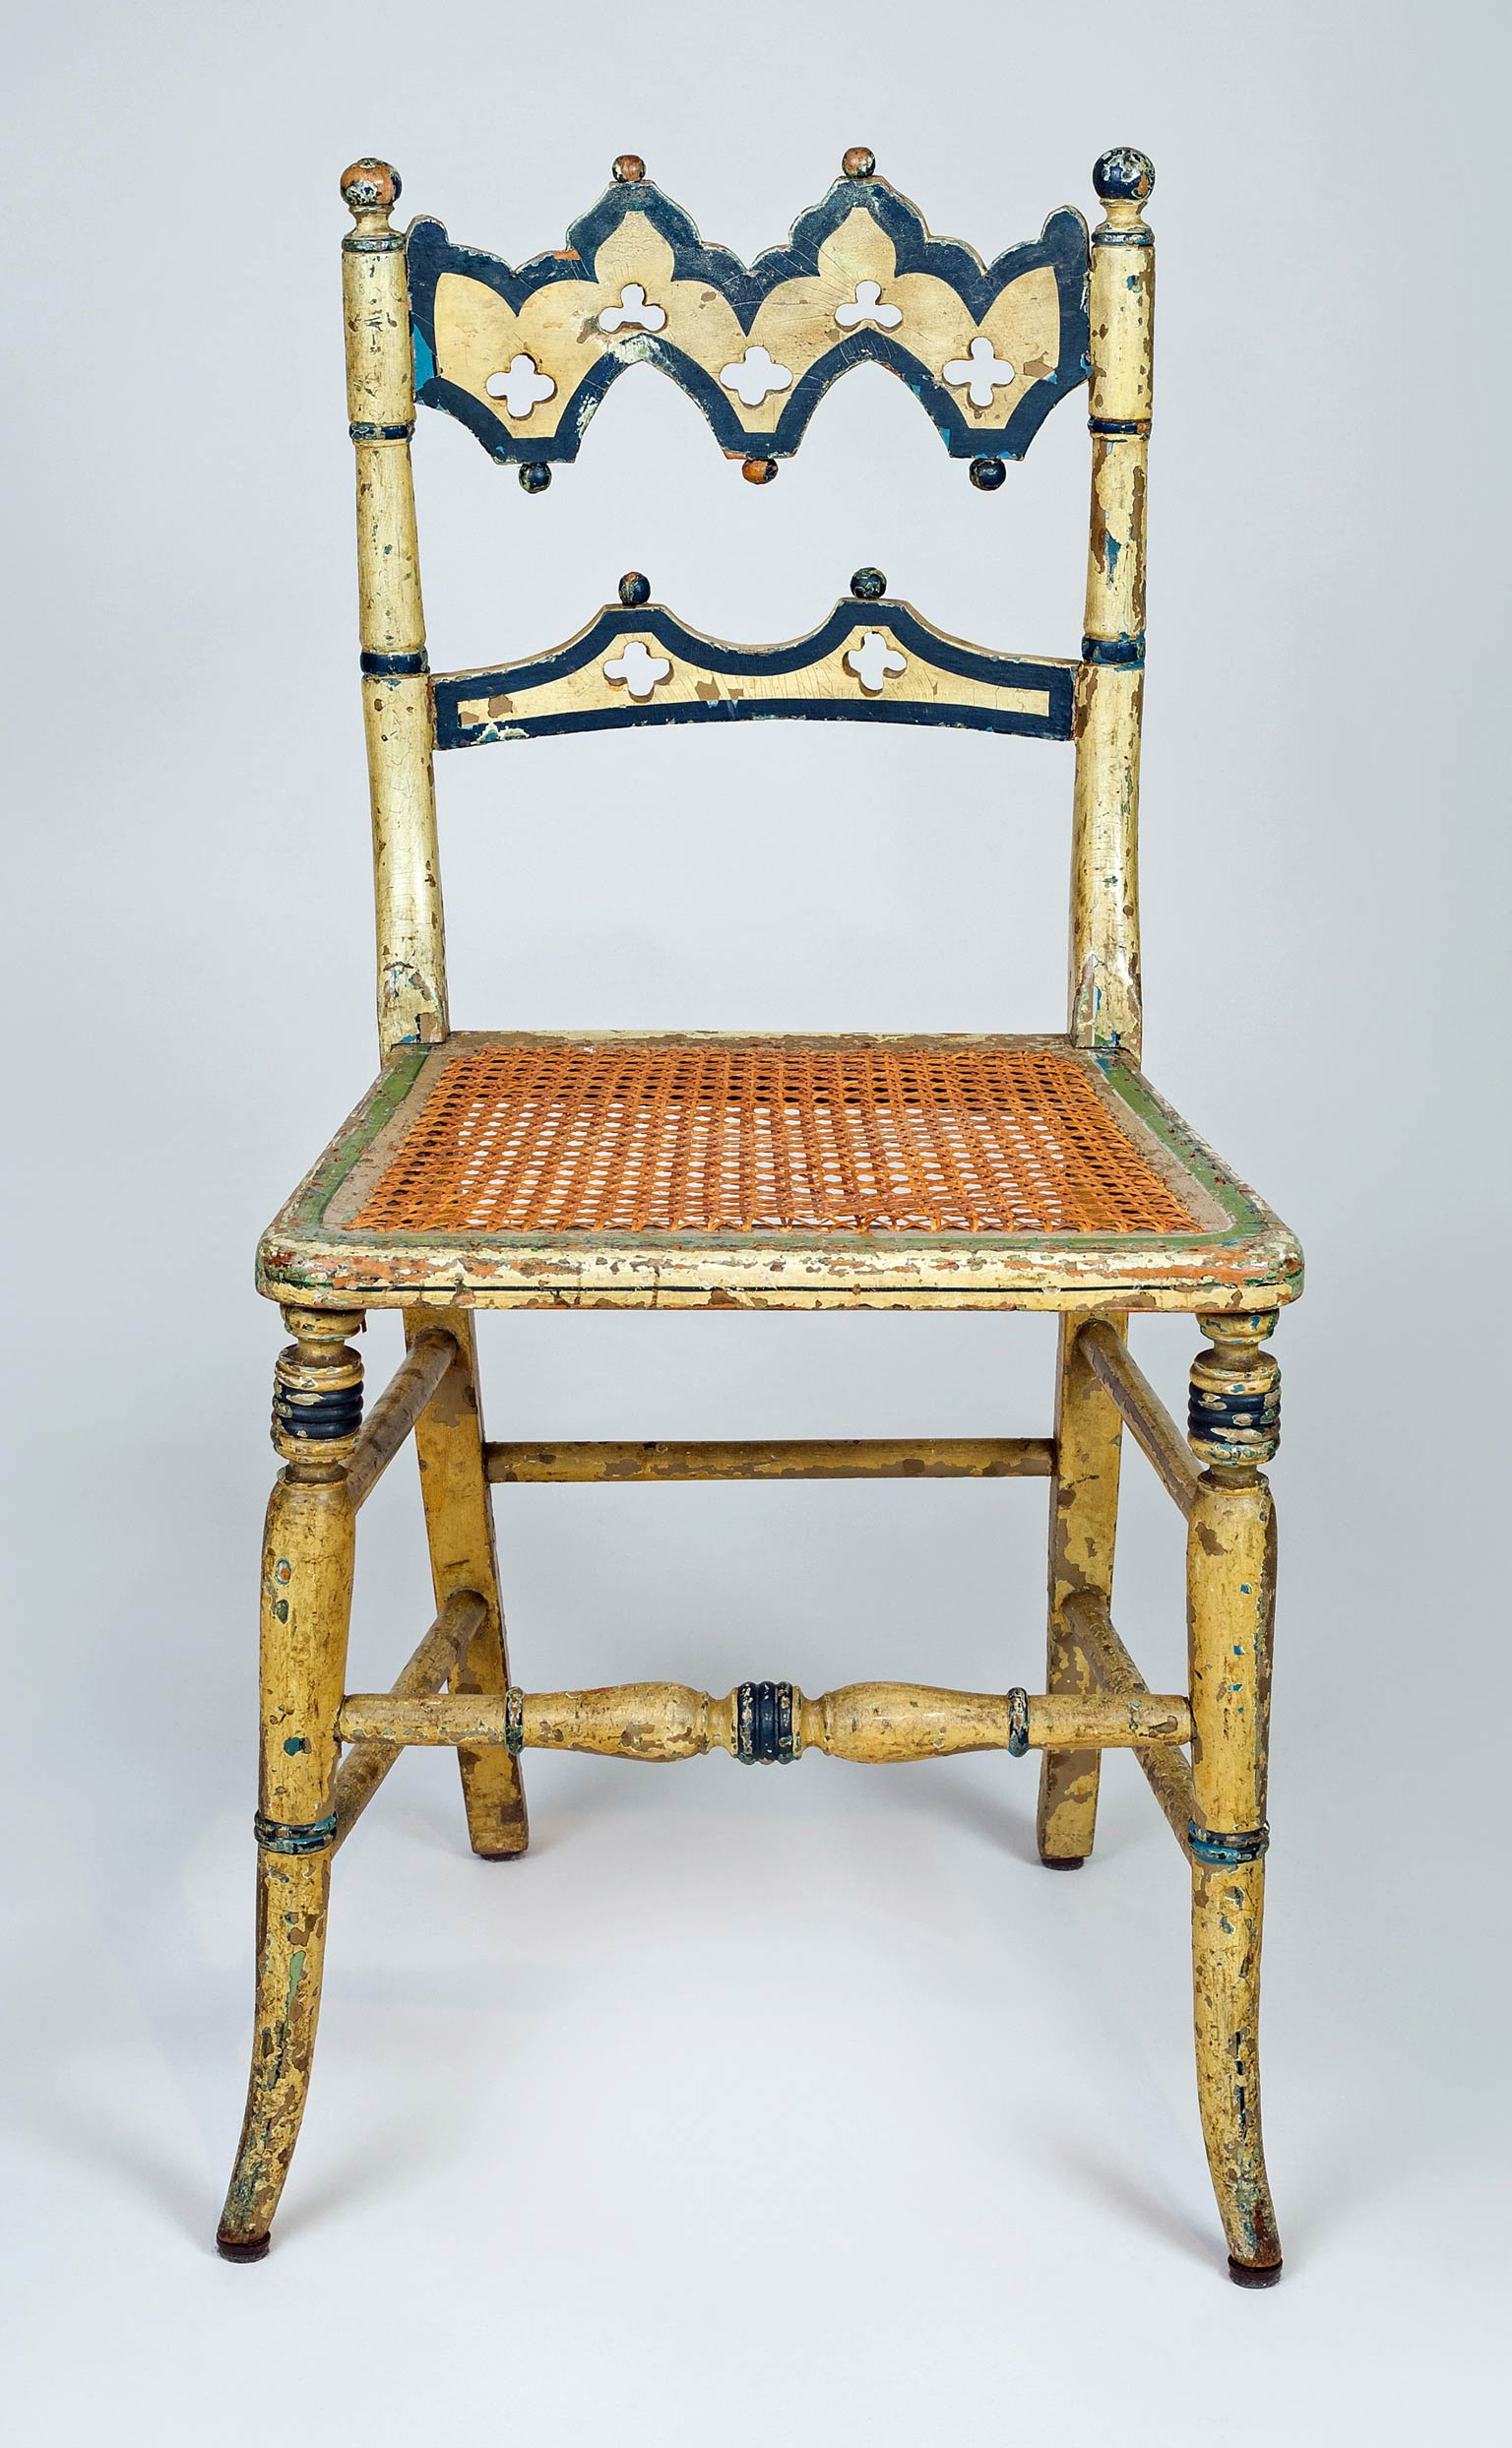 Antique Chairs Benches Day Beds & Settees Stools & Footstools